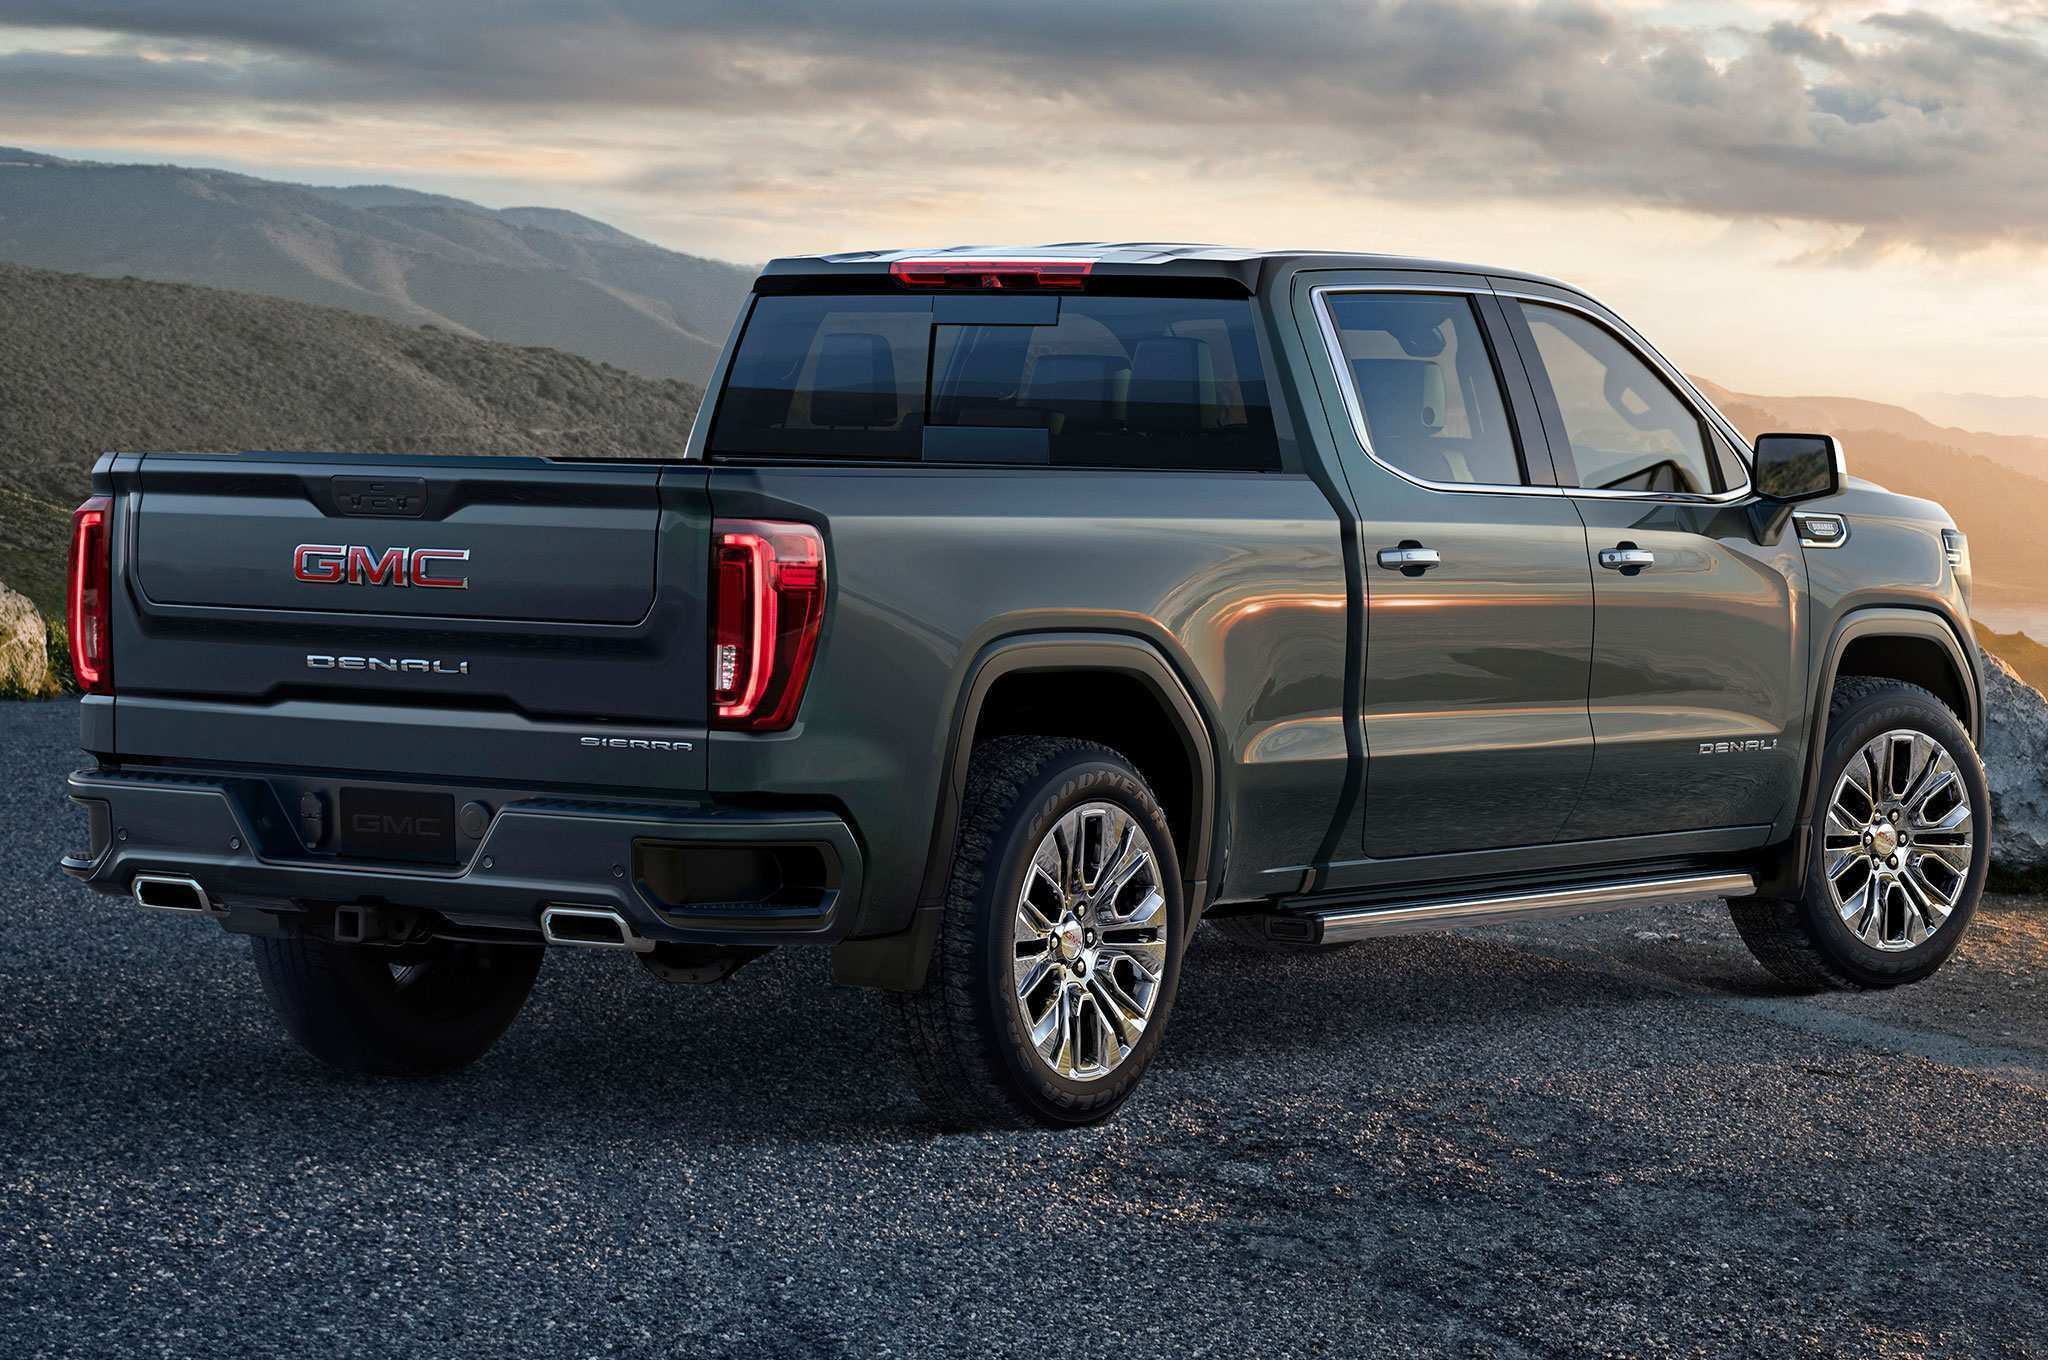 81 New 2019 Gmc Sonoma Price for 2019 Gmc Sonoma